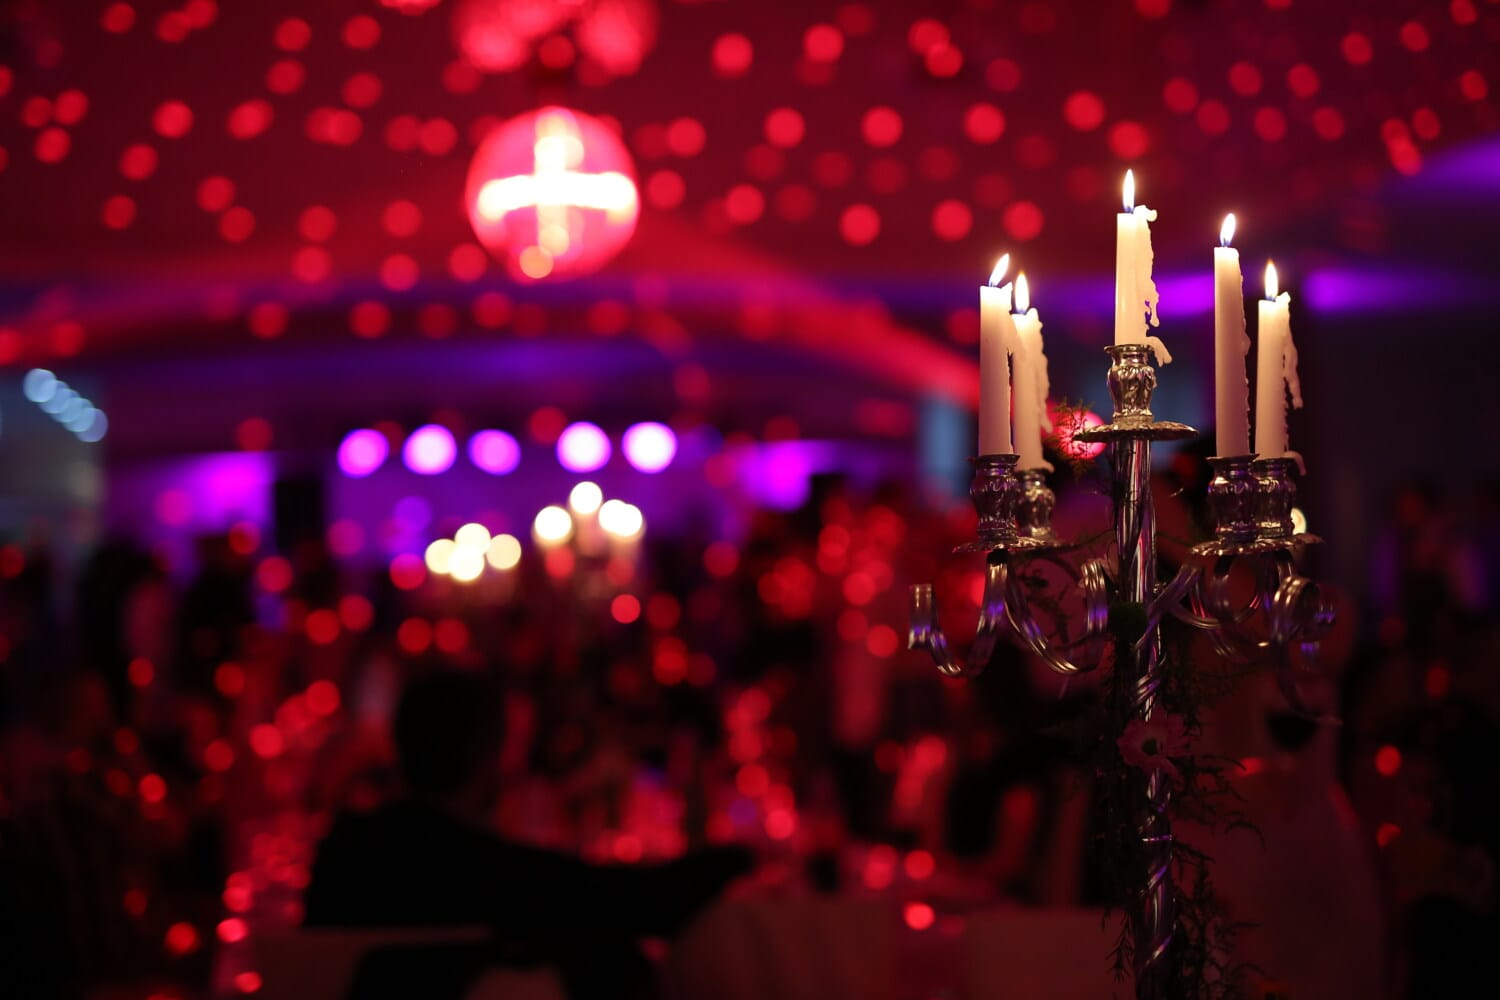 candlelight, spectacular, elegant, fancy, hotel, new year, party, ceremony, celebration, nightlife